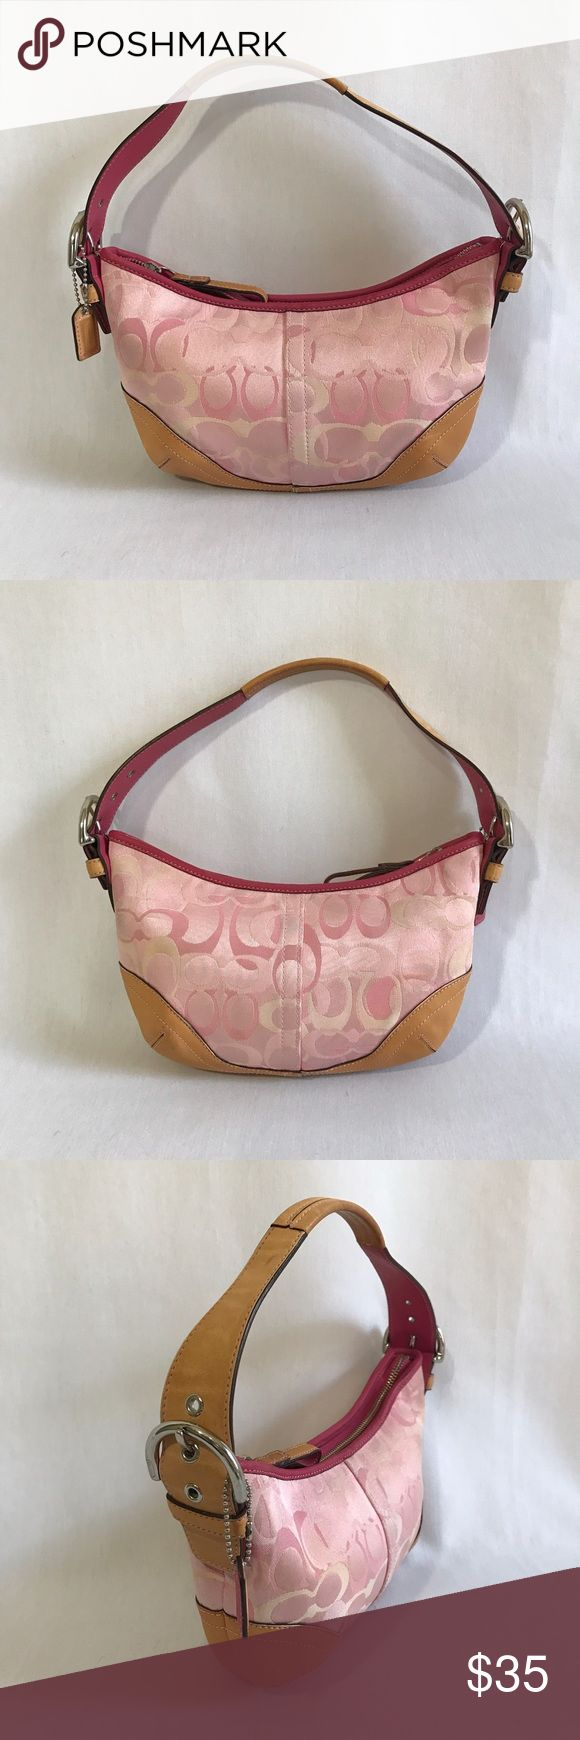 Coach Hobo Bag Pink opt art small hobo bag with tan leather trim and silver hardware. Pink lining with 1 zip pocket. Lining has slight marks (see picture). Zip closure. Great used condition. Coach Bags Hobos